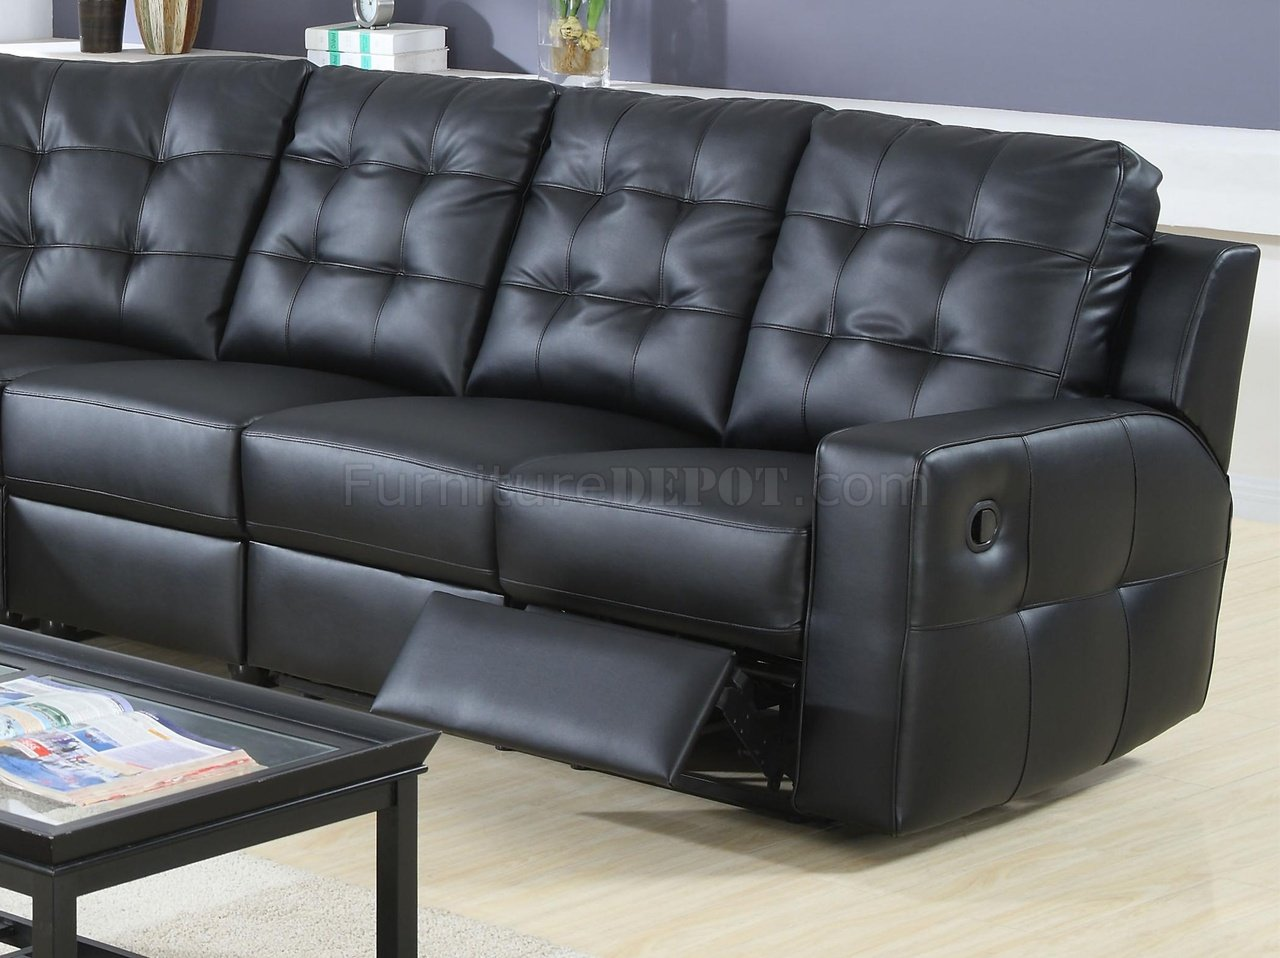 modern bonded leather sectional sofa with recliners ethan allen preston 90 double reclining 600315 black